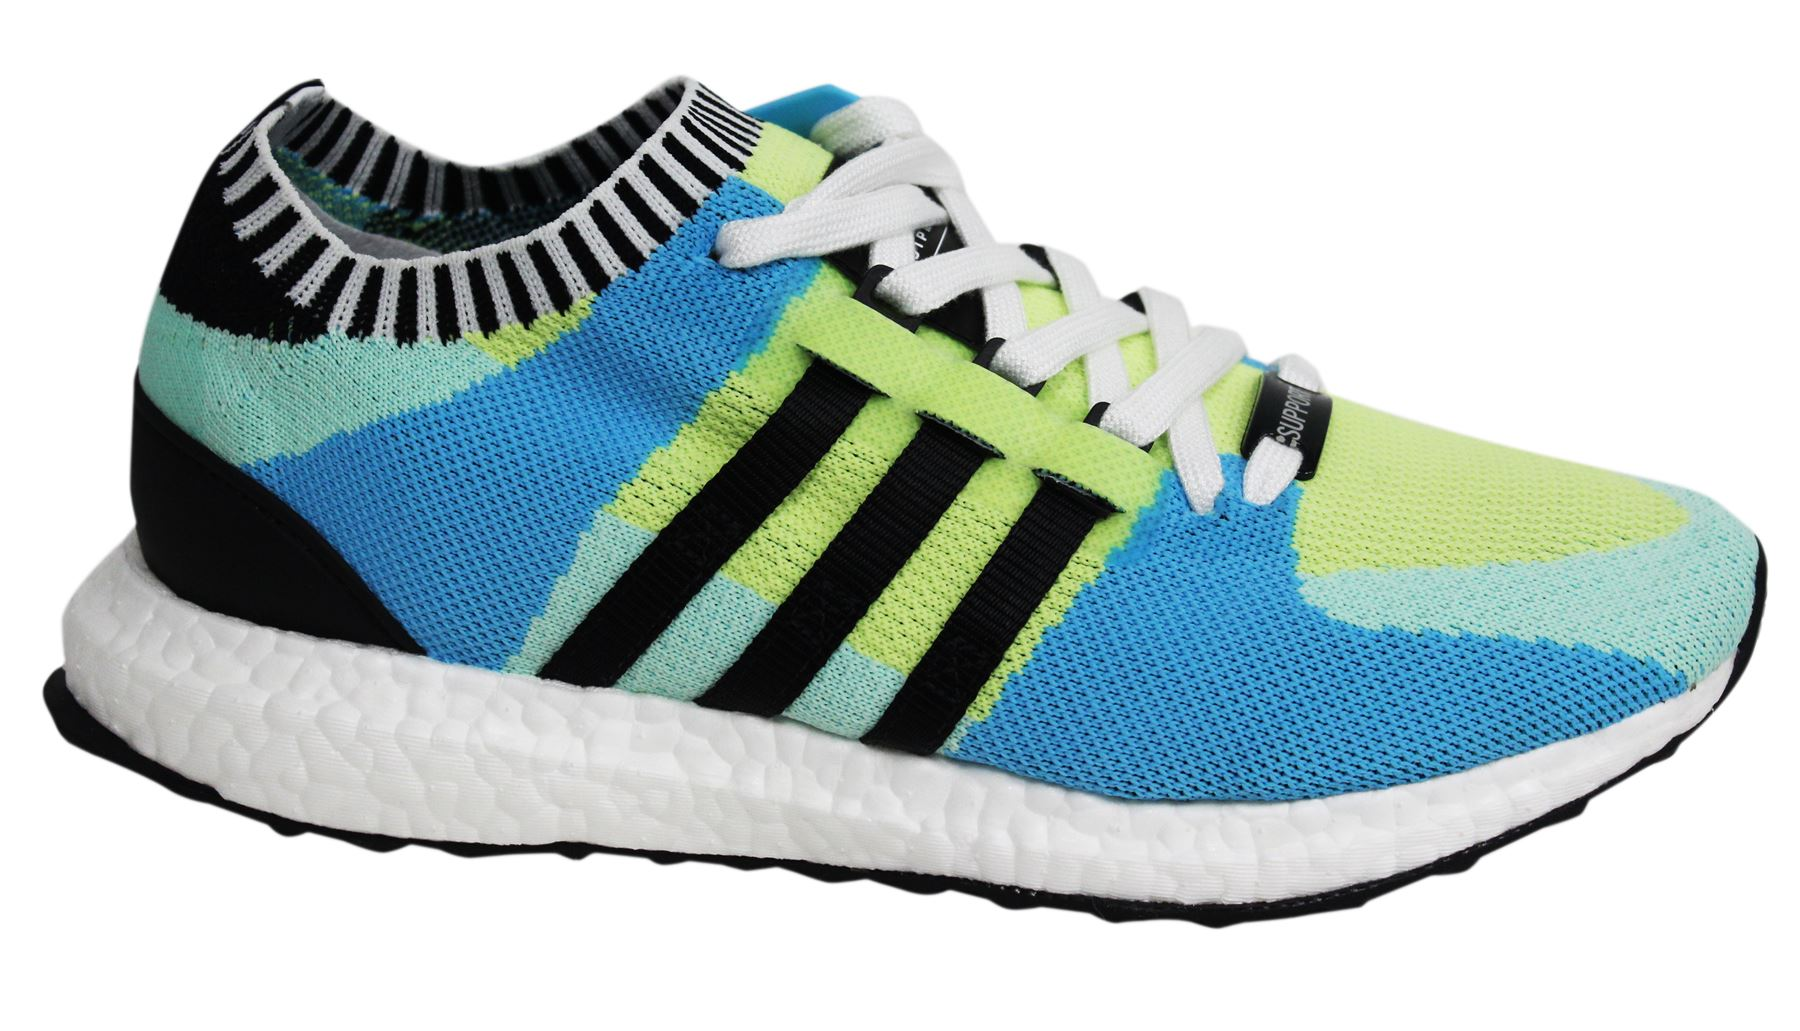 Adidas Support Ultra PK Lace Up Mens Multicoloured Textile Trainers BB1244 U28